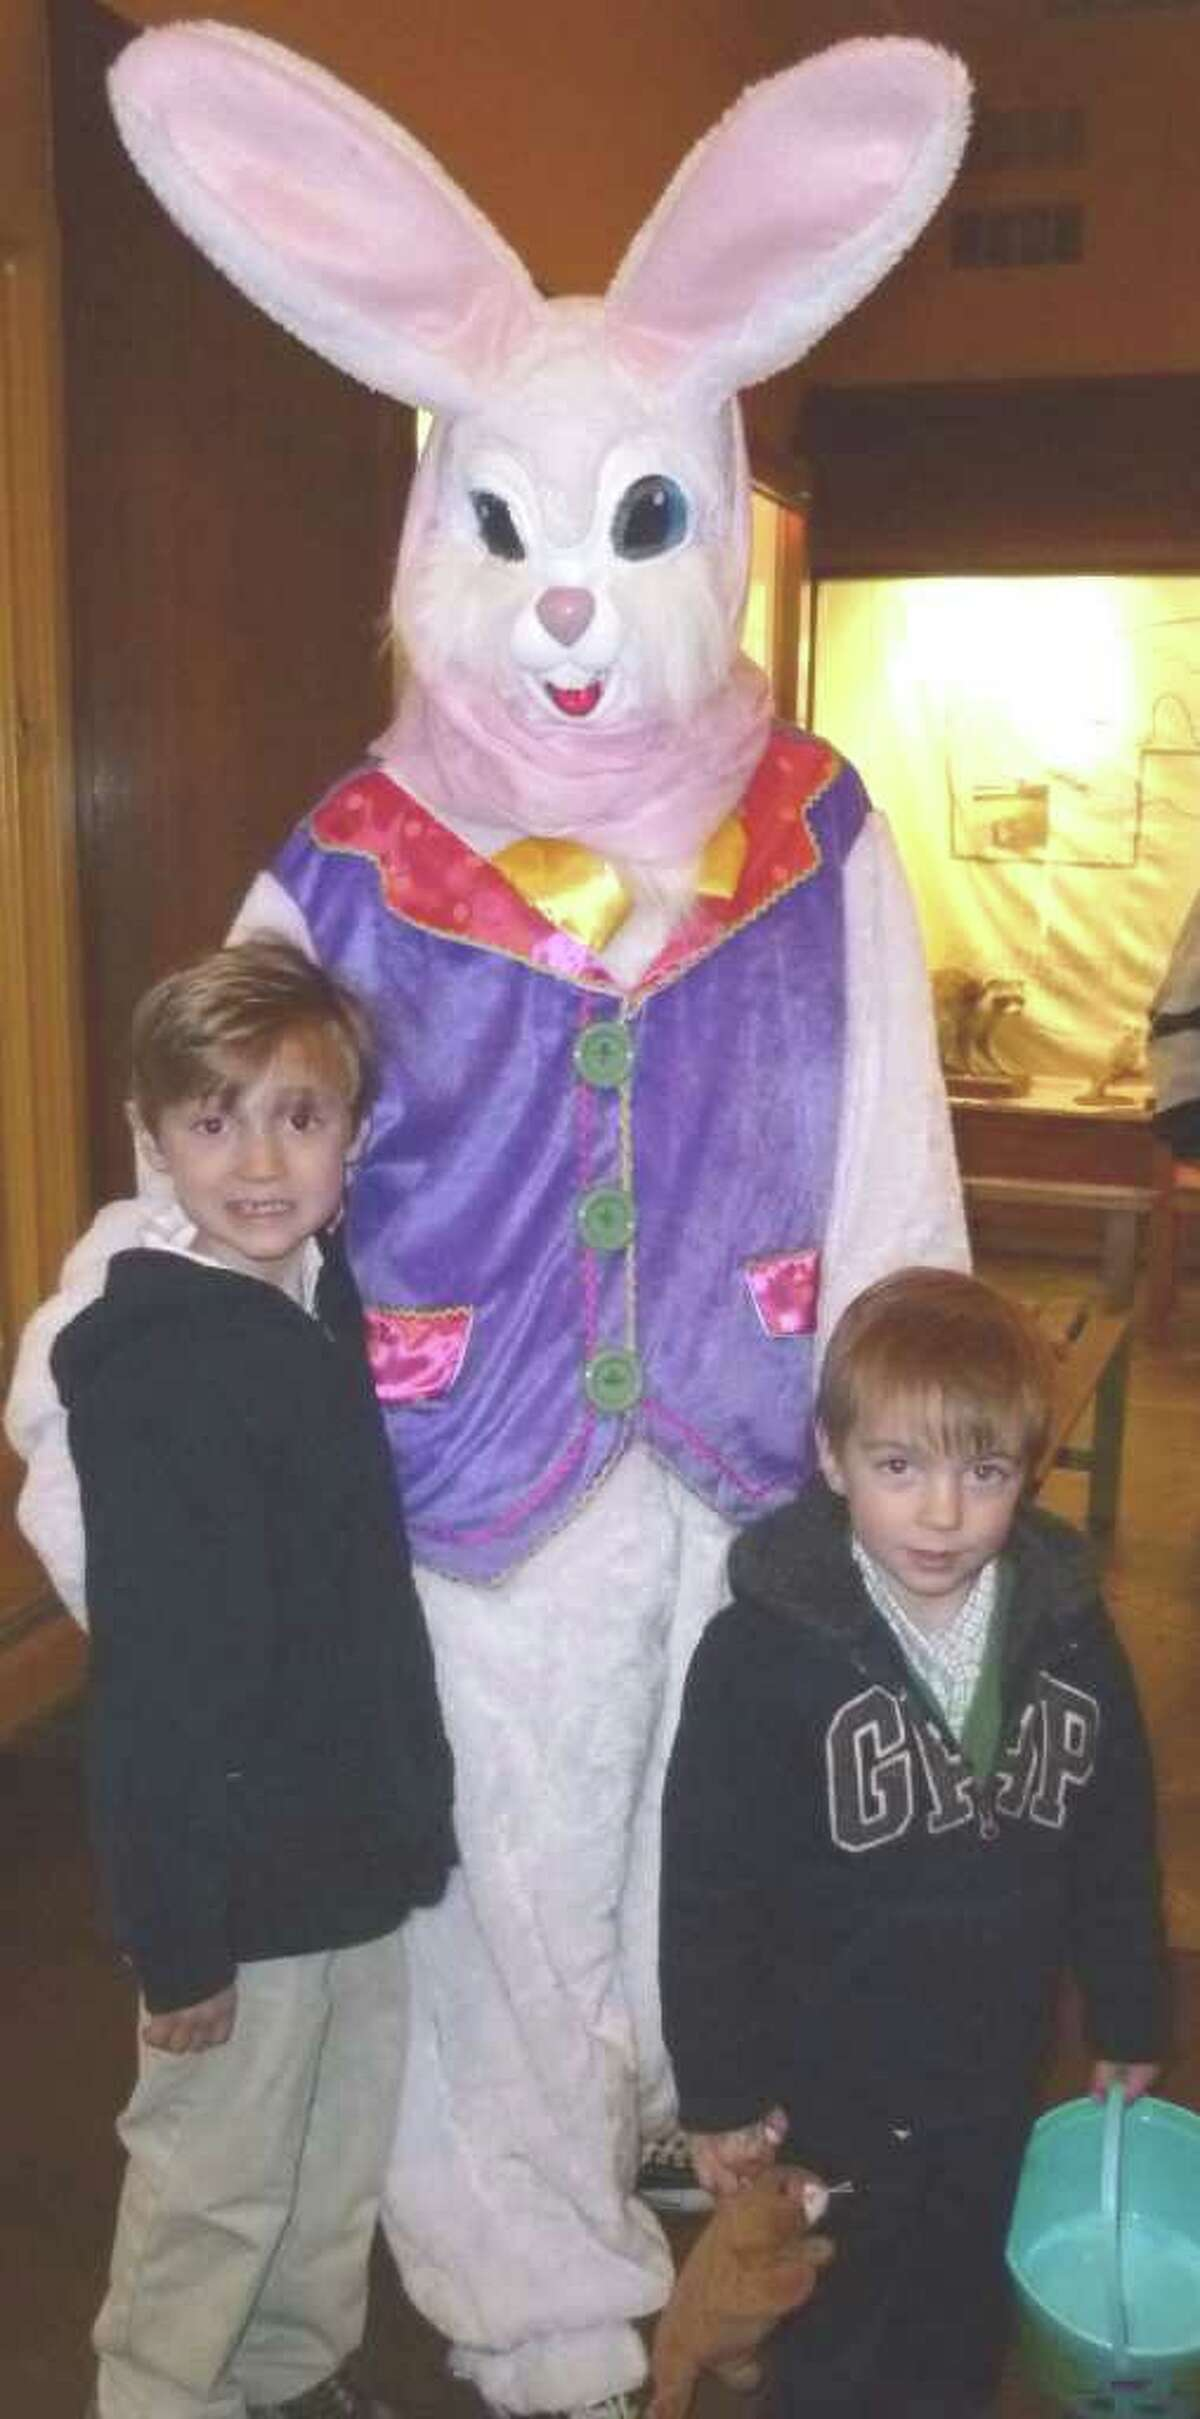 Robert Malgioglio, 7, of Monroe, with younger brother Ryan, 3, visit with the Easter bunny at the Connecticut Audubon Society's Easter celebration Saturday at its Burr Street nature preserve.